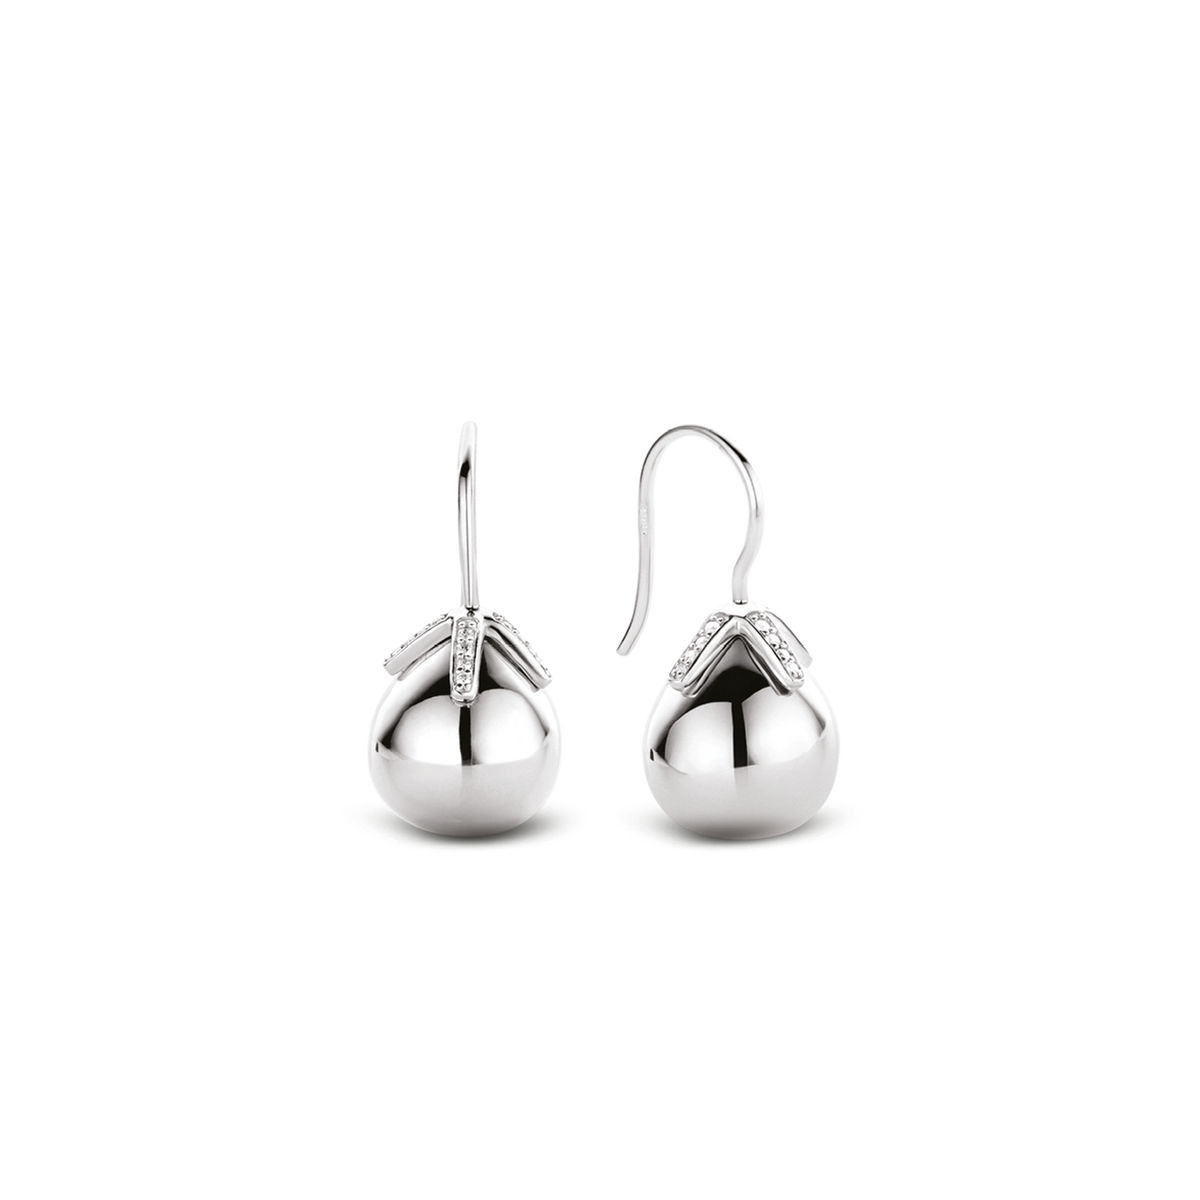 TI SENTO - Milano Earrings 7775SI